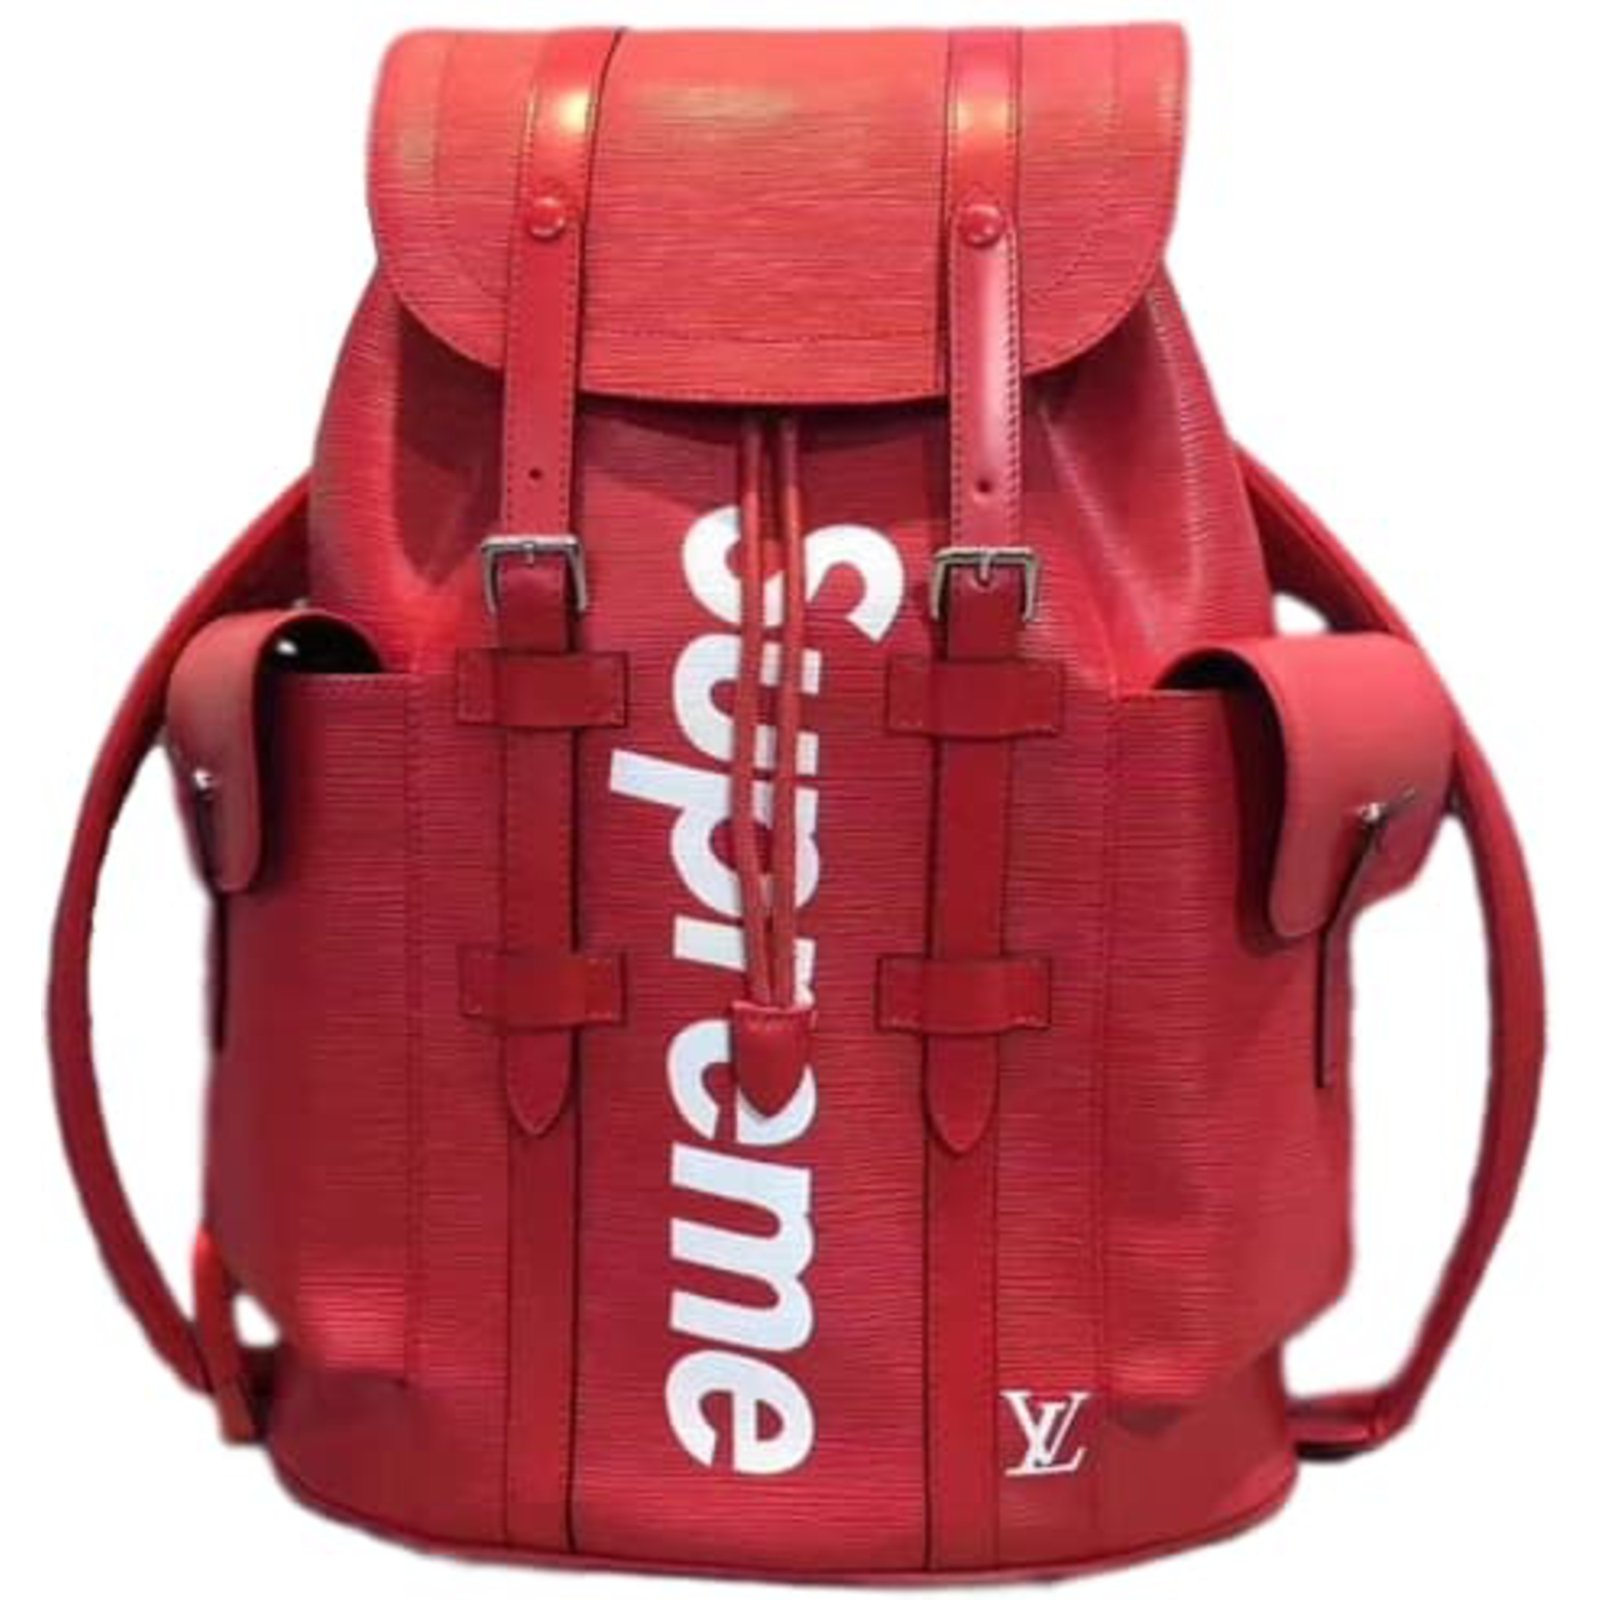 Red Supreme Lv Bag Price | City Of Kenmore, Washington